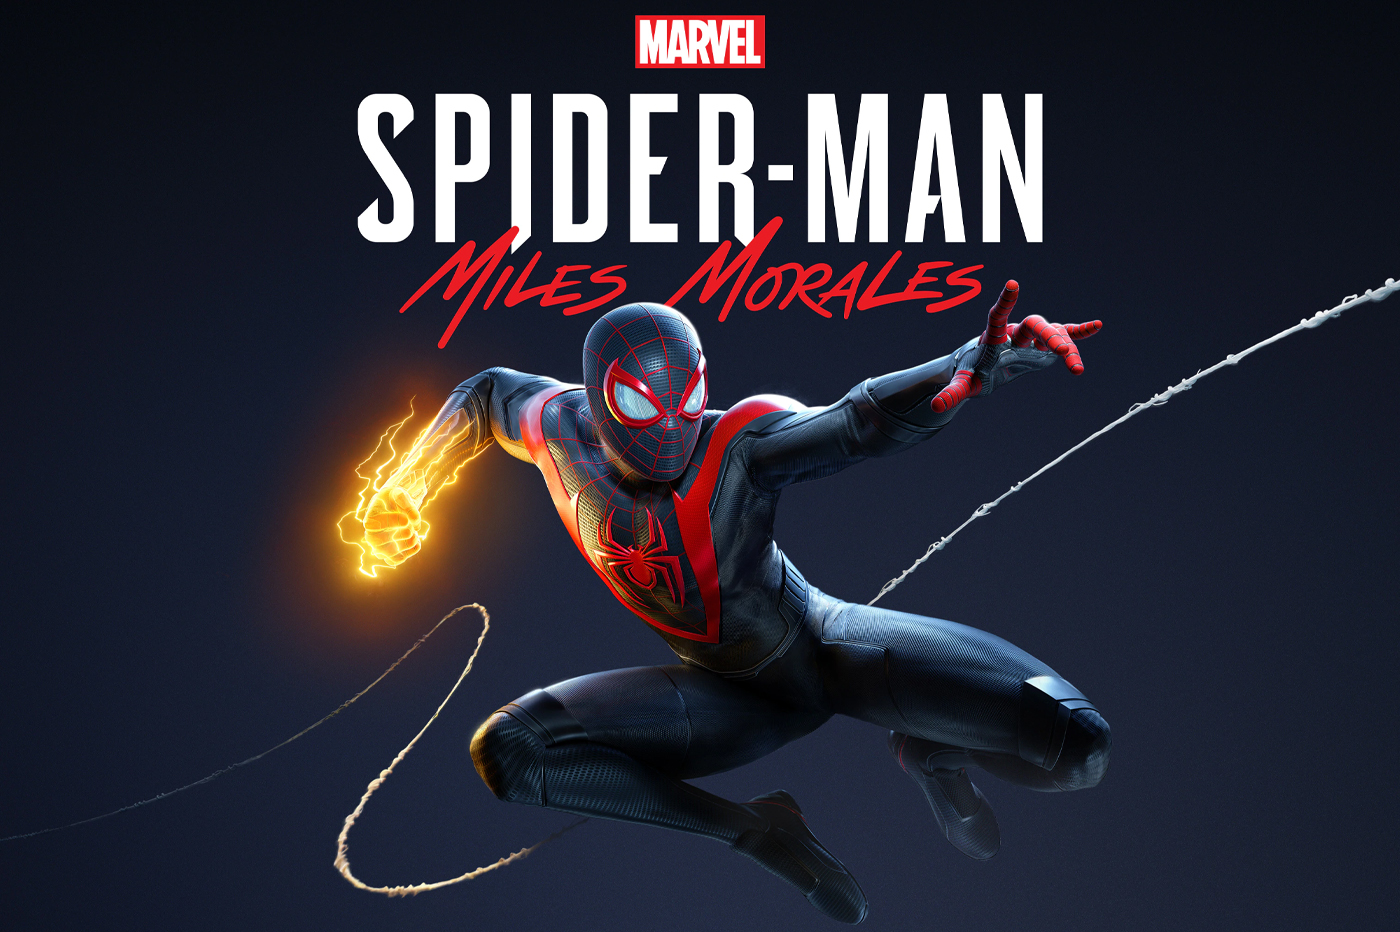 Marvel's Spider-Man: Miles Morales; Marvel; Spider-Man;